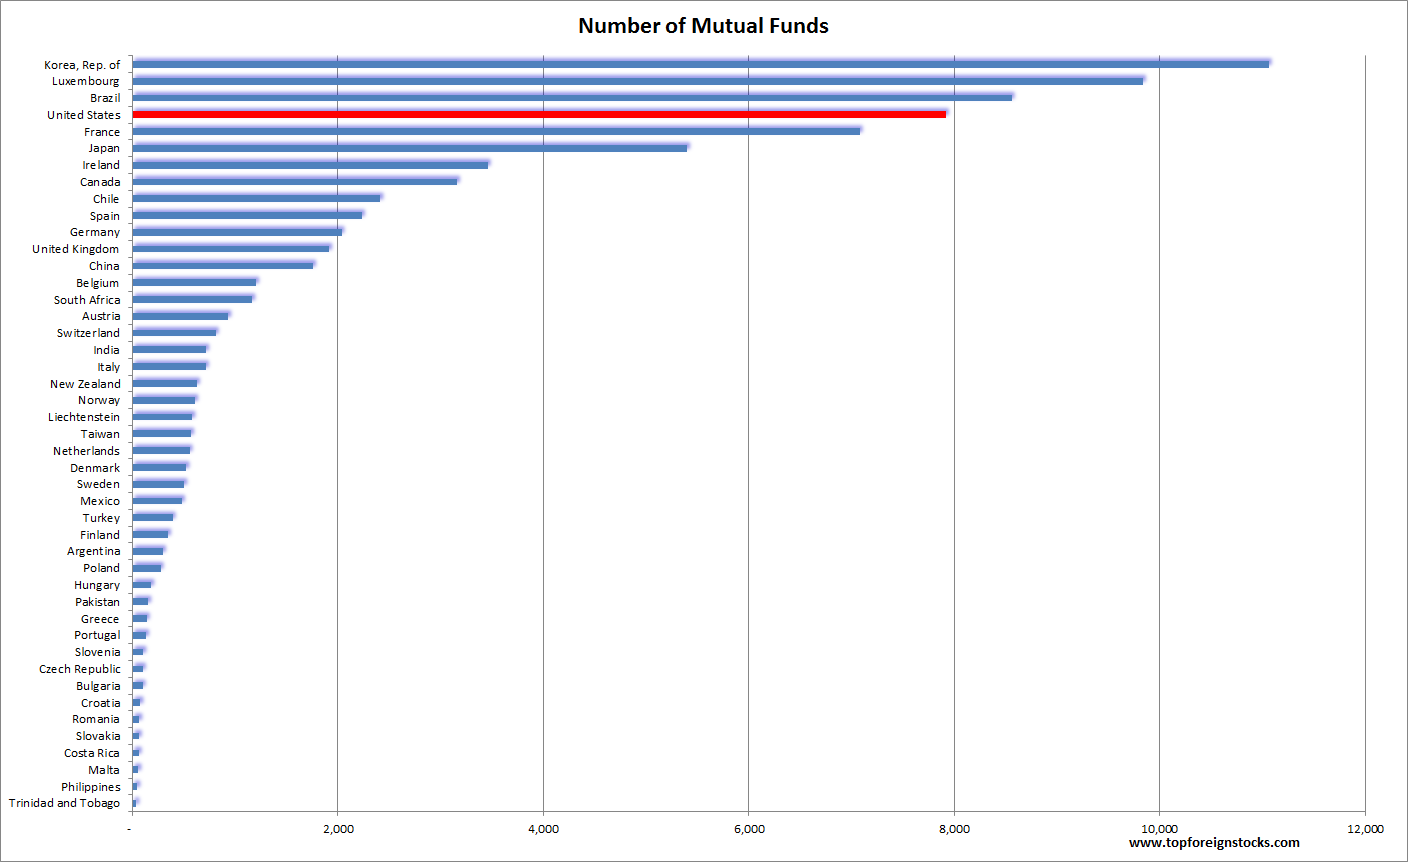 Number of Mutual Funds by COuntry